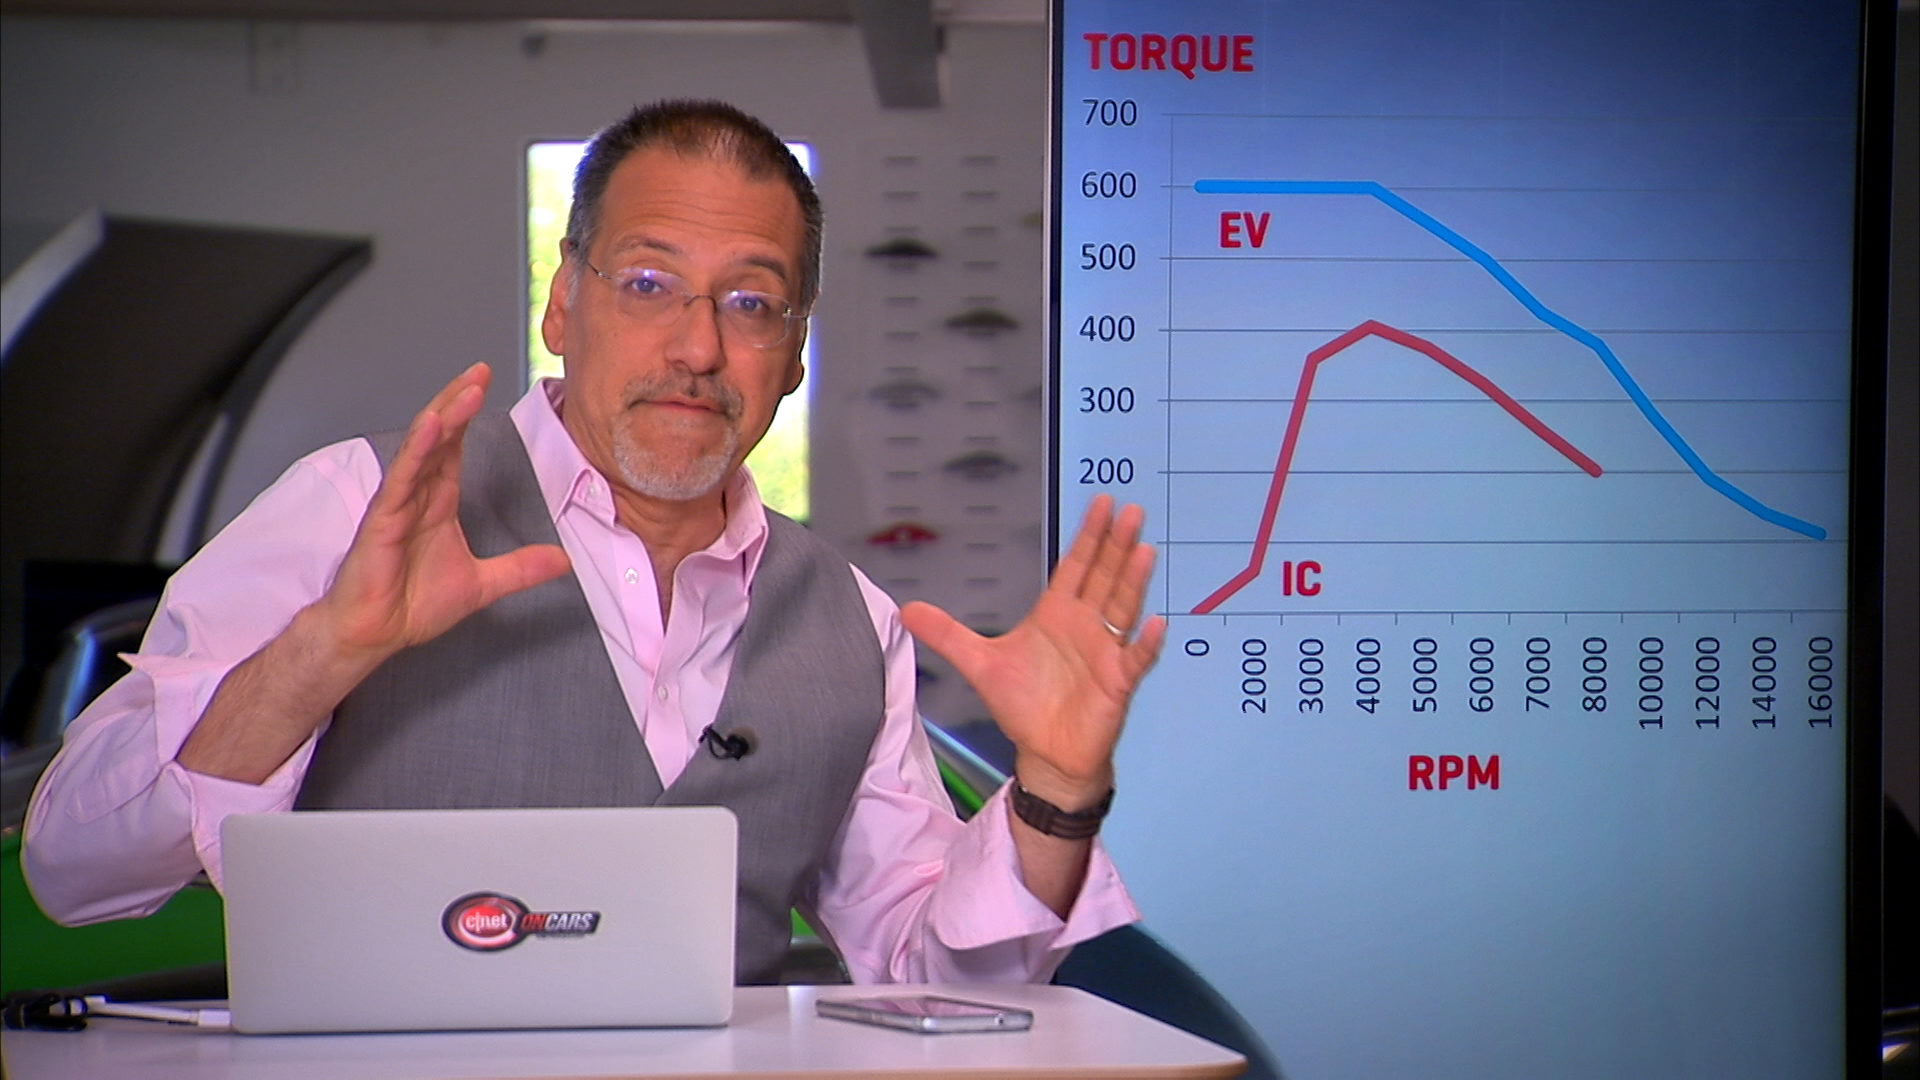 Video: Your emails: Why don't electric cars have geared transmissions?